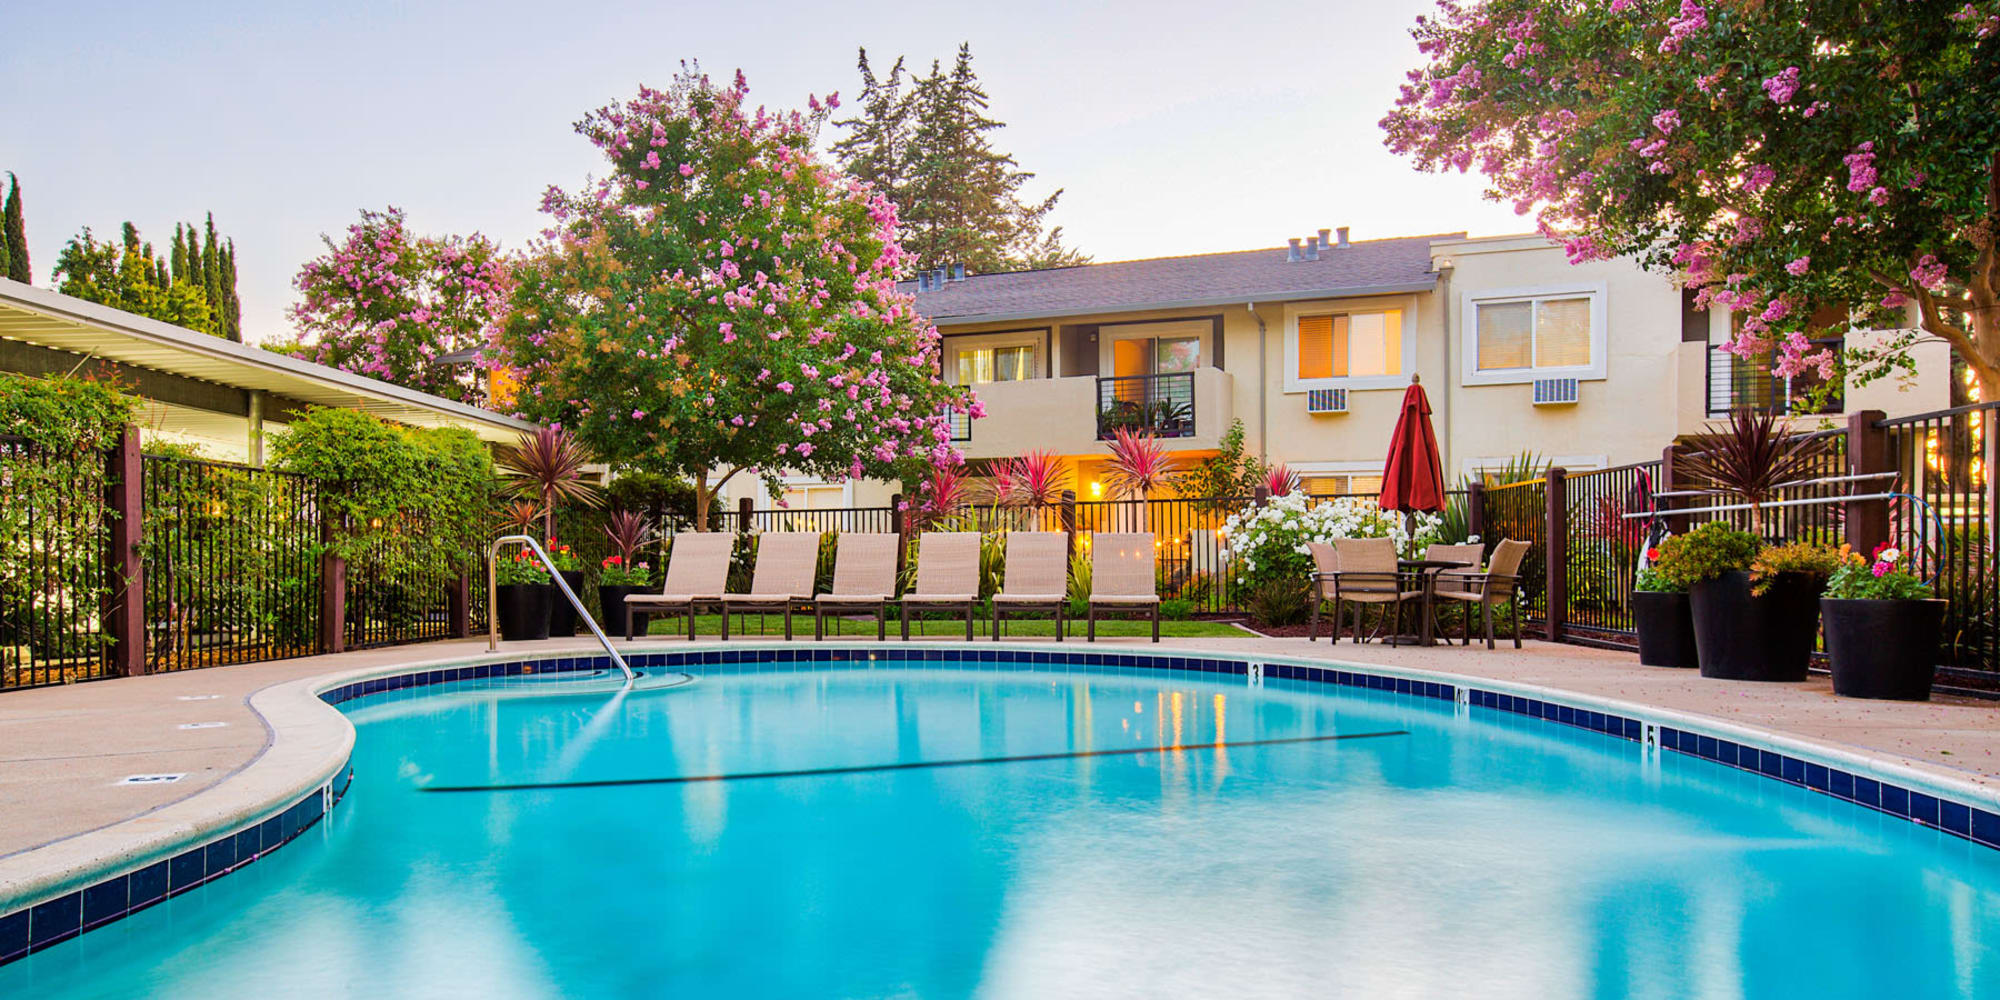 Early twilight view of the swimming pool area at Pleasanton Place Apartment Homes in Pleasanton, California